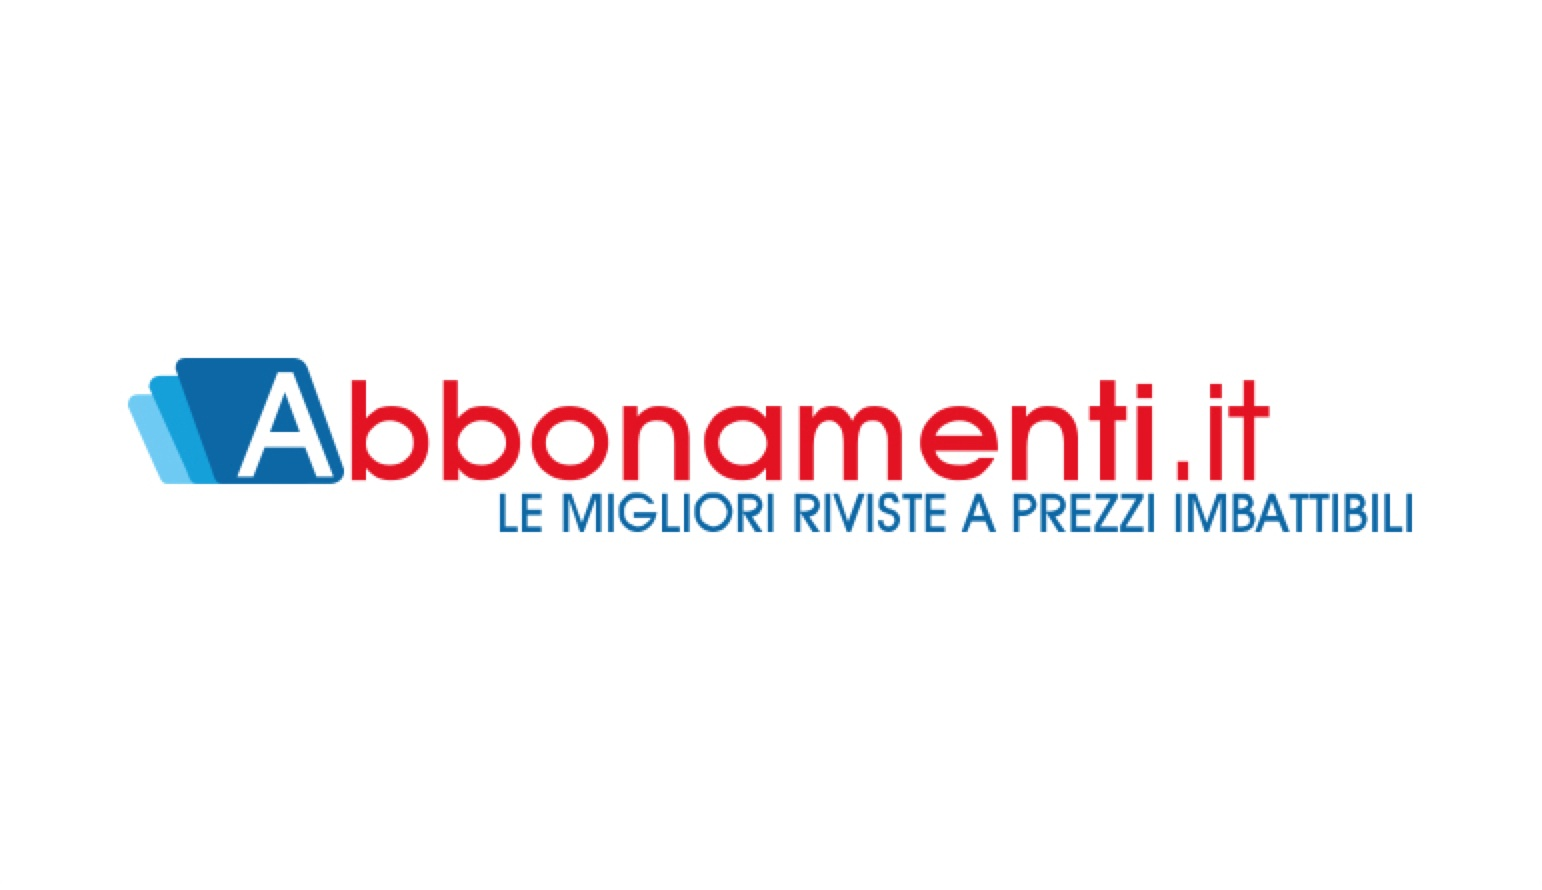 Adabra è il nuovo partner per la marketing automation di Abbonamenti.it